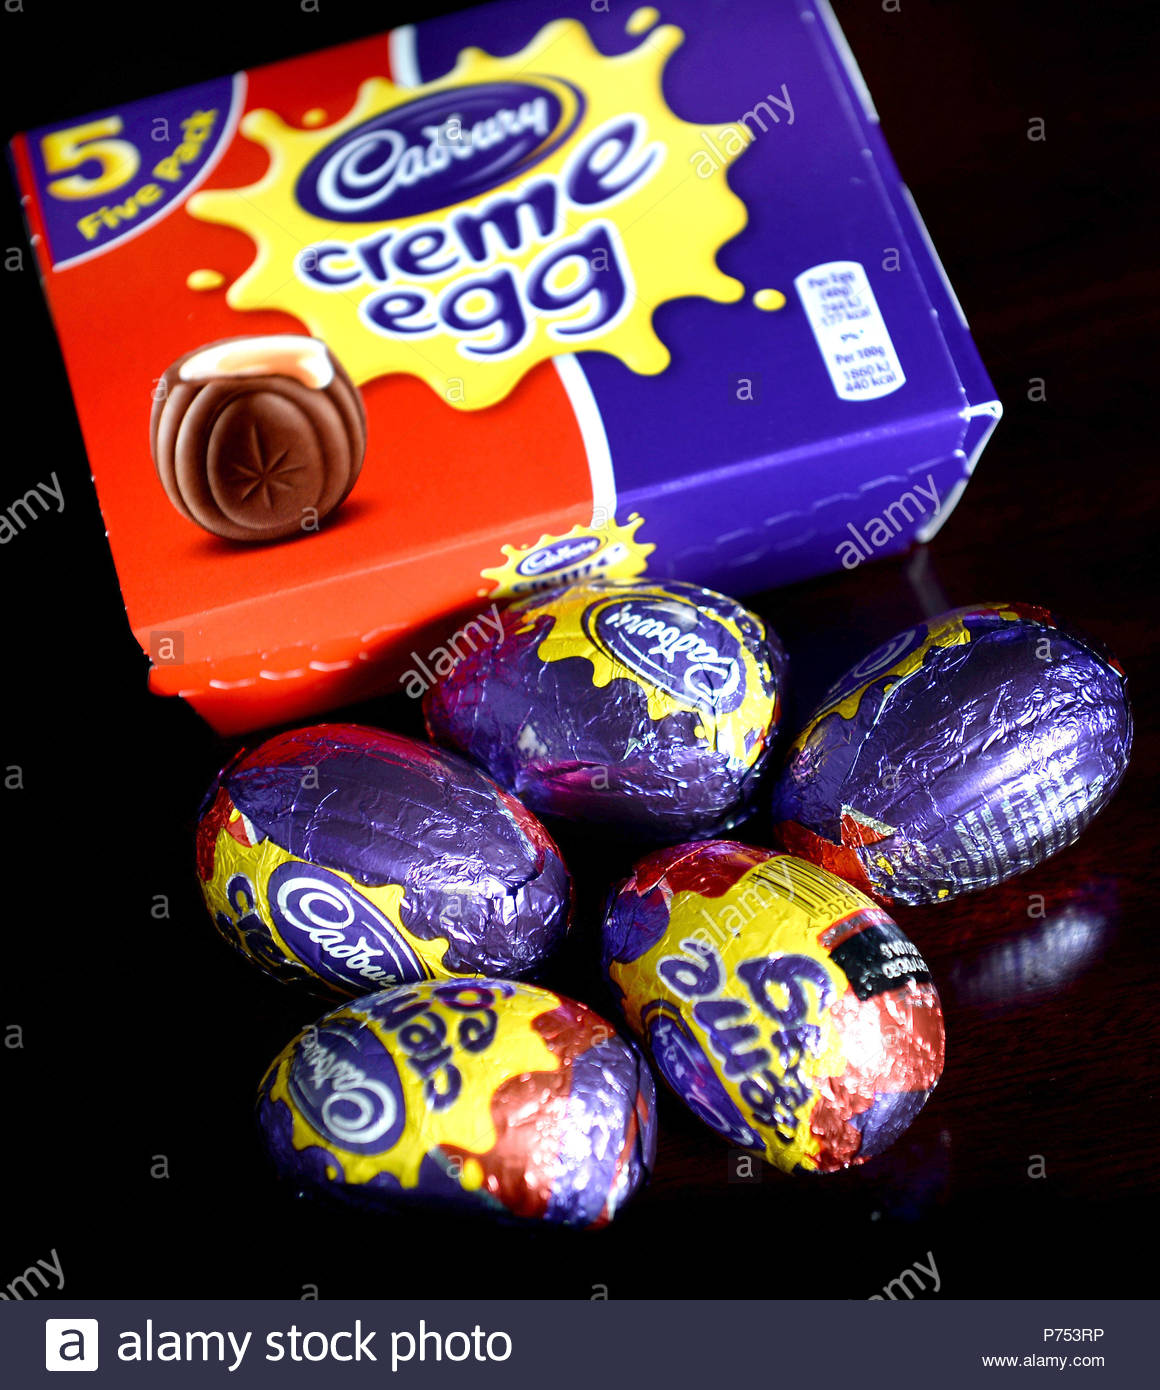 File photo dated 12/01/2015 of a five pack of Cadbury's Creme Eggs, as adverts for Cadbury eggs and Chewits and Squashies sweets have been banned for breaking new rules prohibiting the advertising of junk food to children. - Stock Image